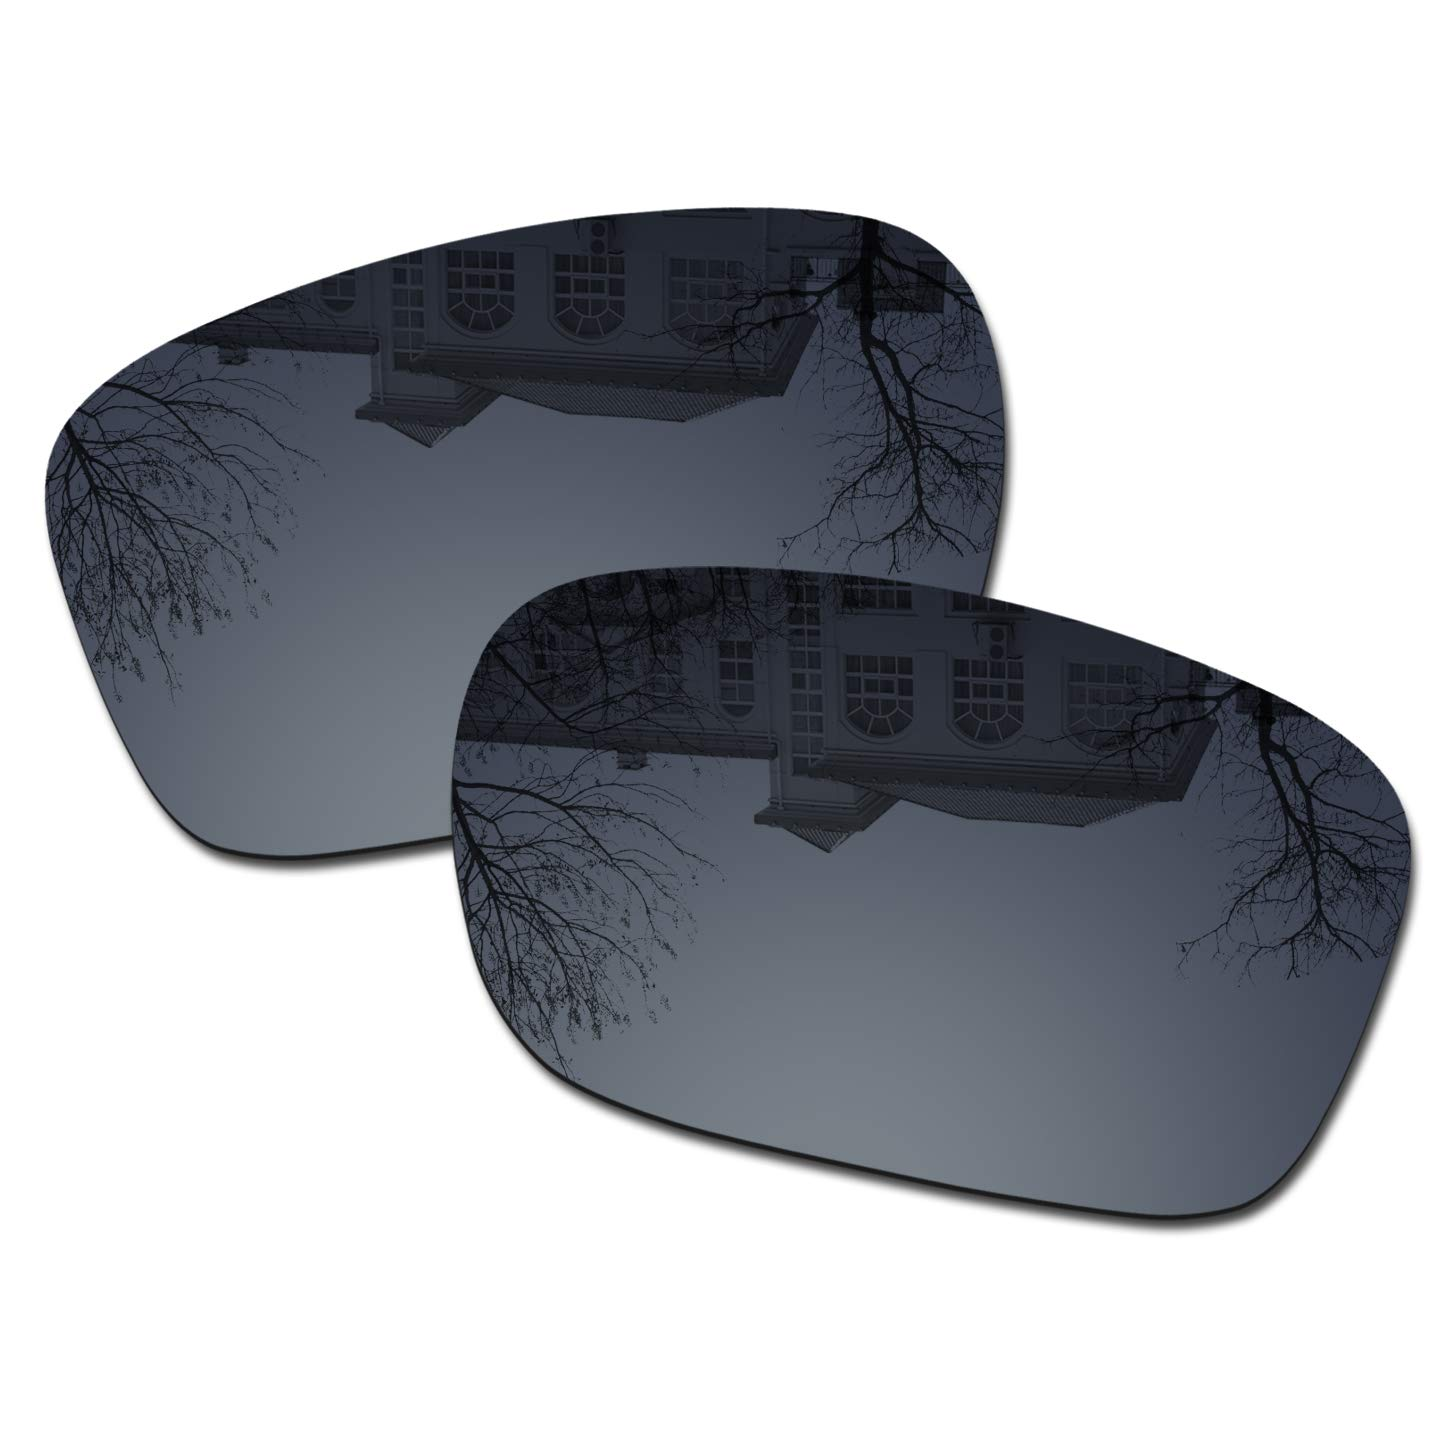 Millersawp Holbrook OO9102 Replacement Lenses Compatiable with Oakley Sunglass-Black Iridium by Millersawp